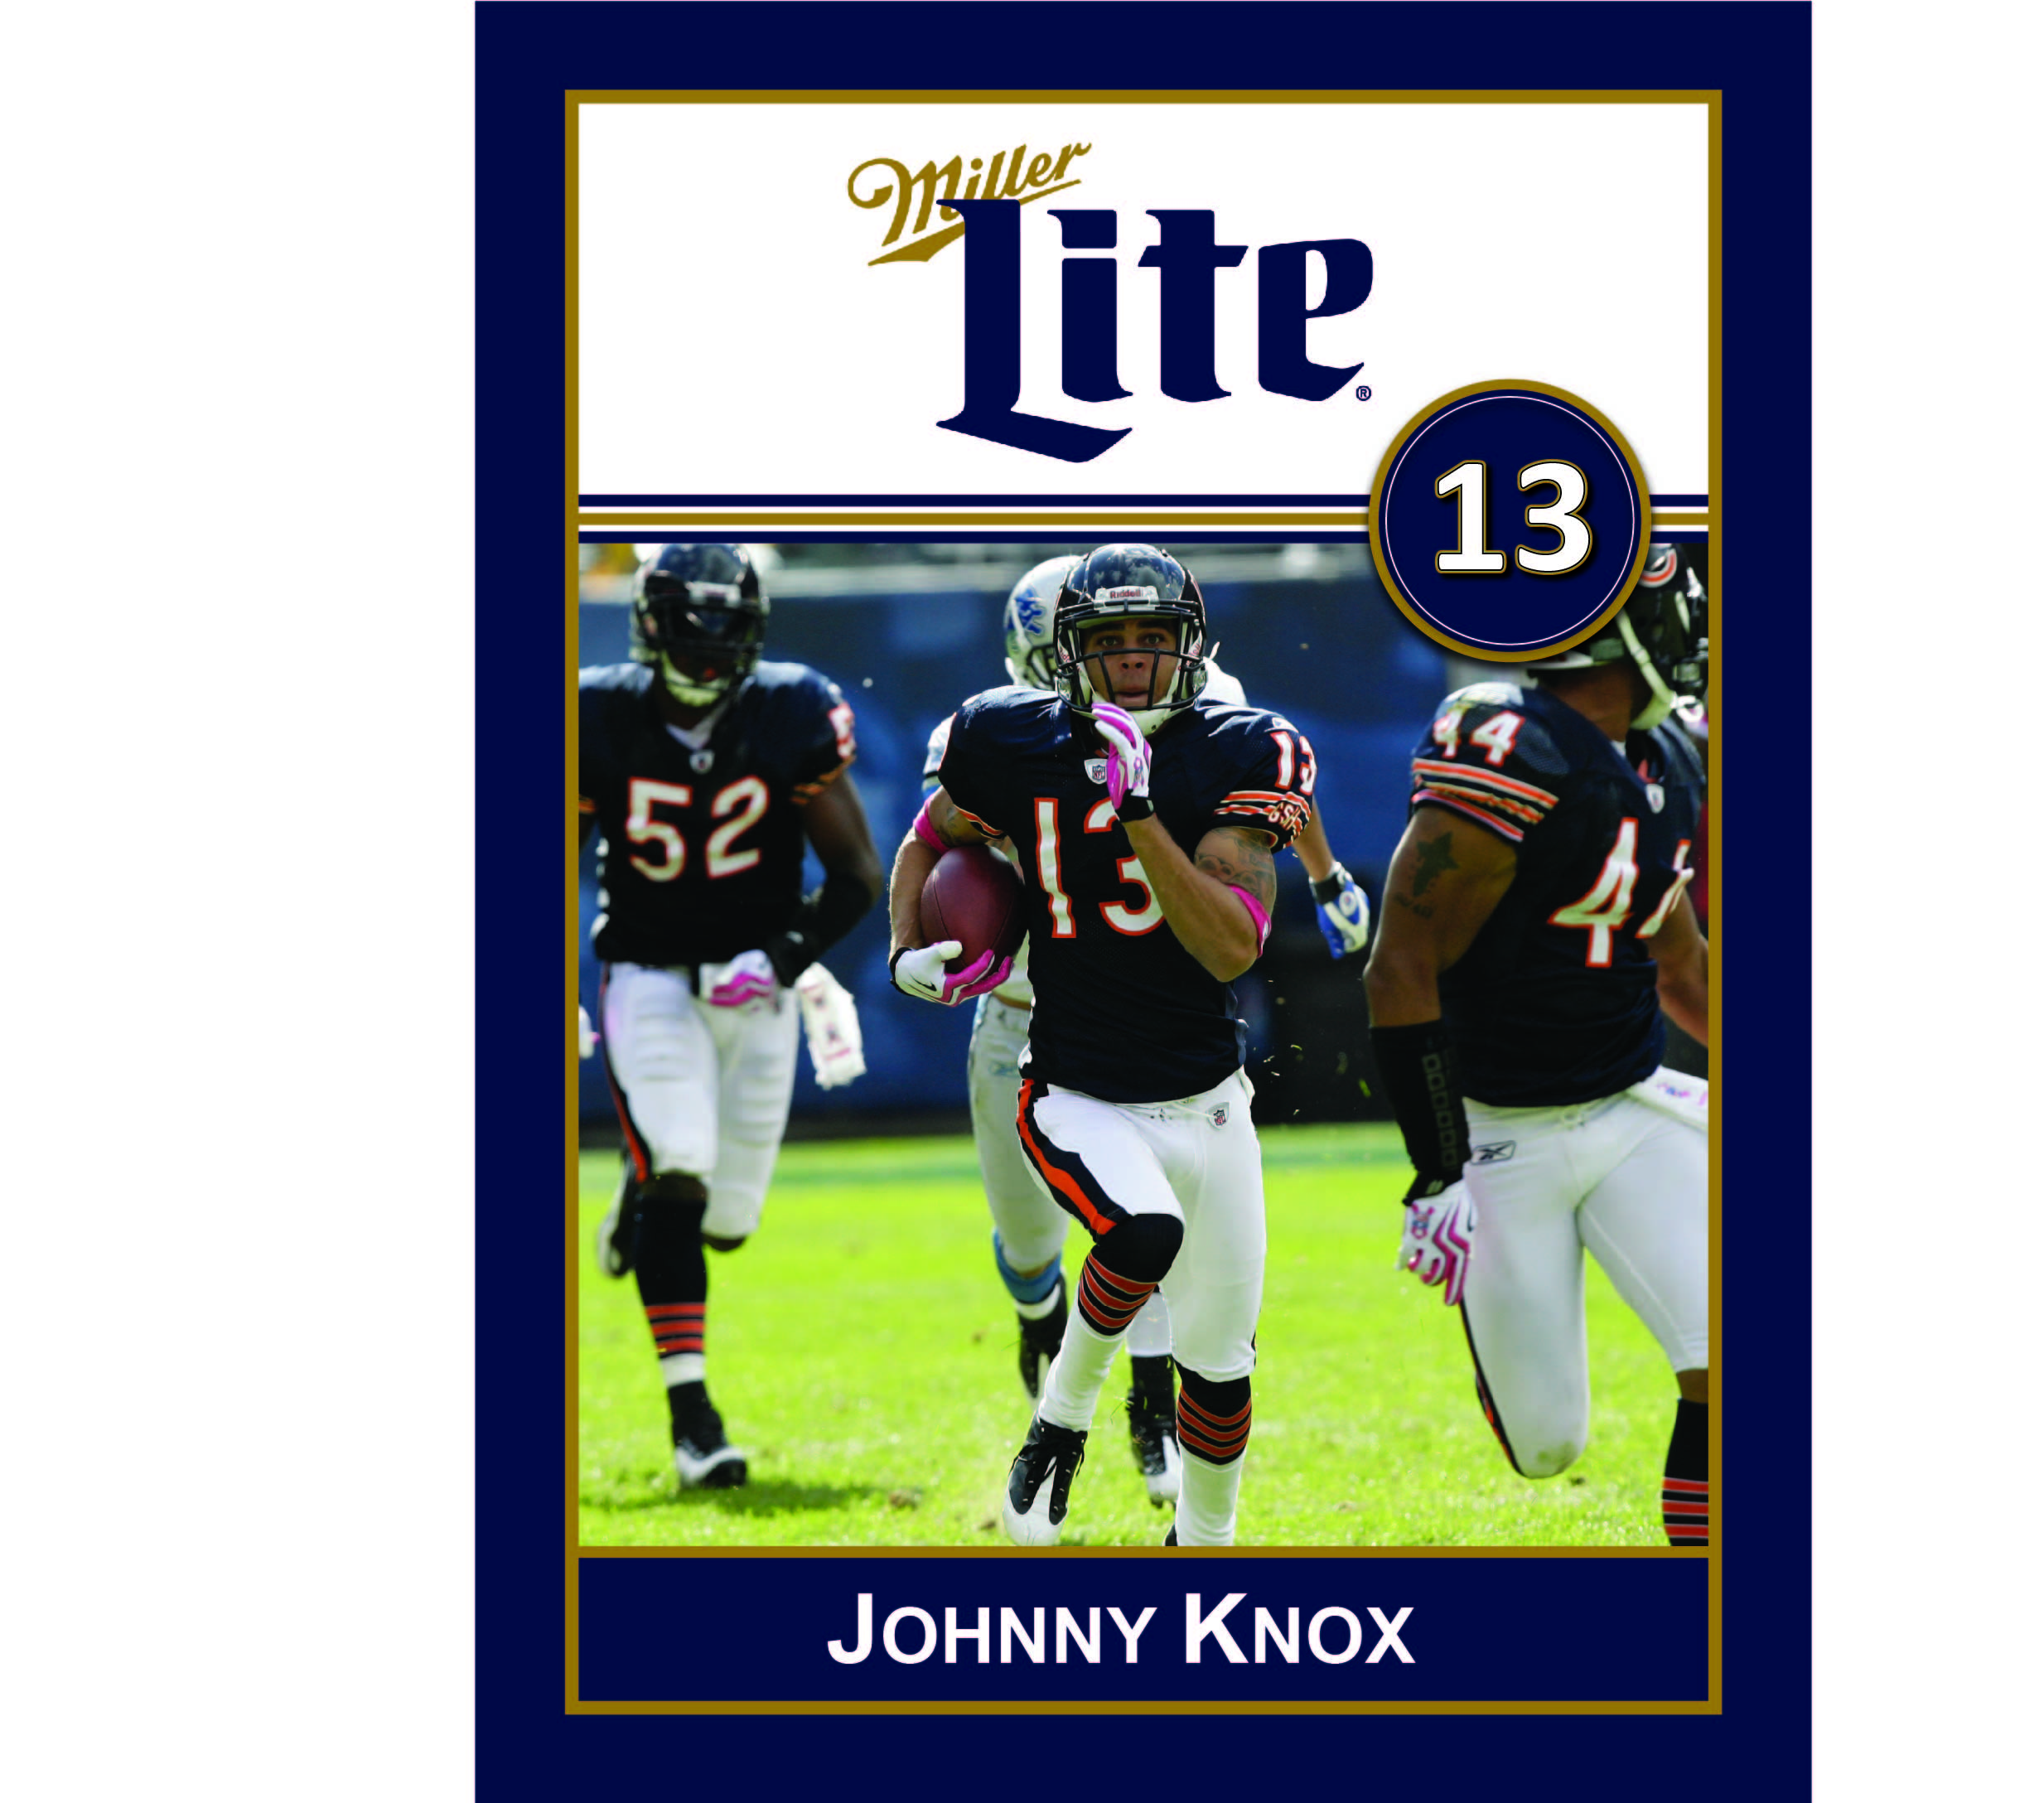 Miller Lite Chicago Bears Appearance with Johnny Knox